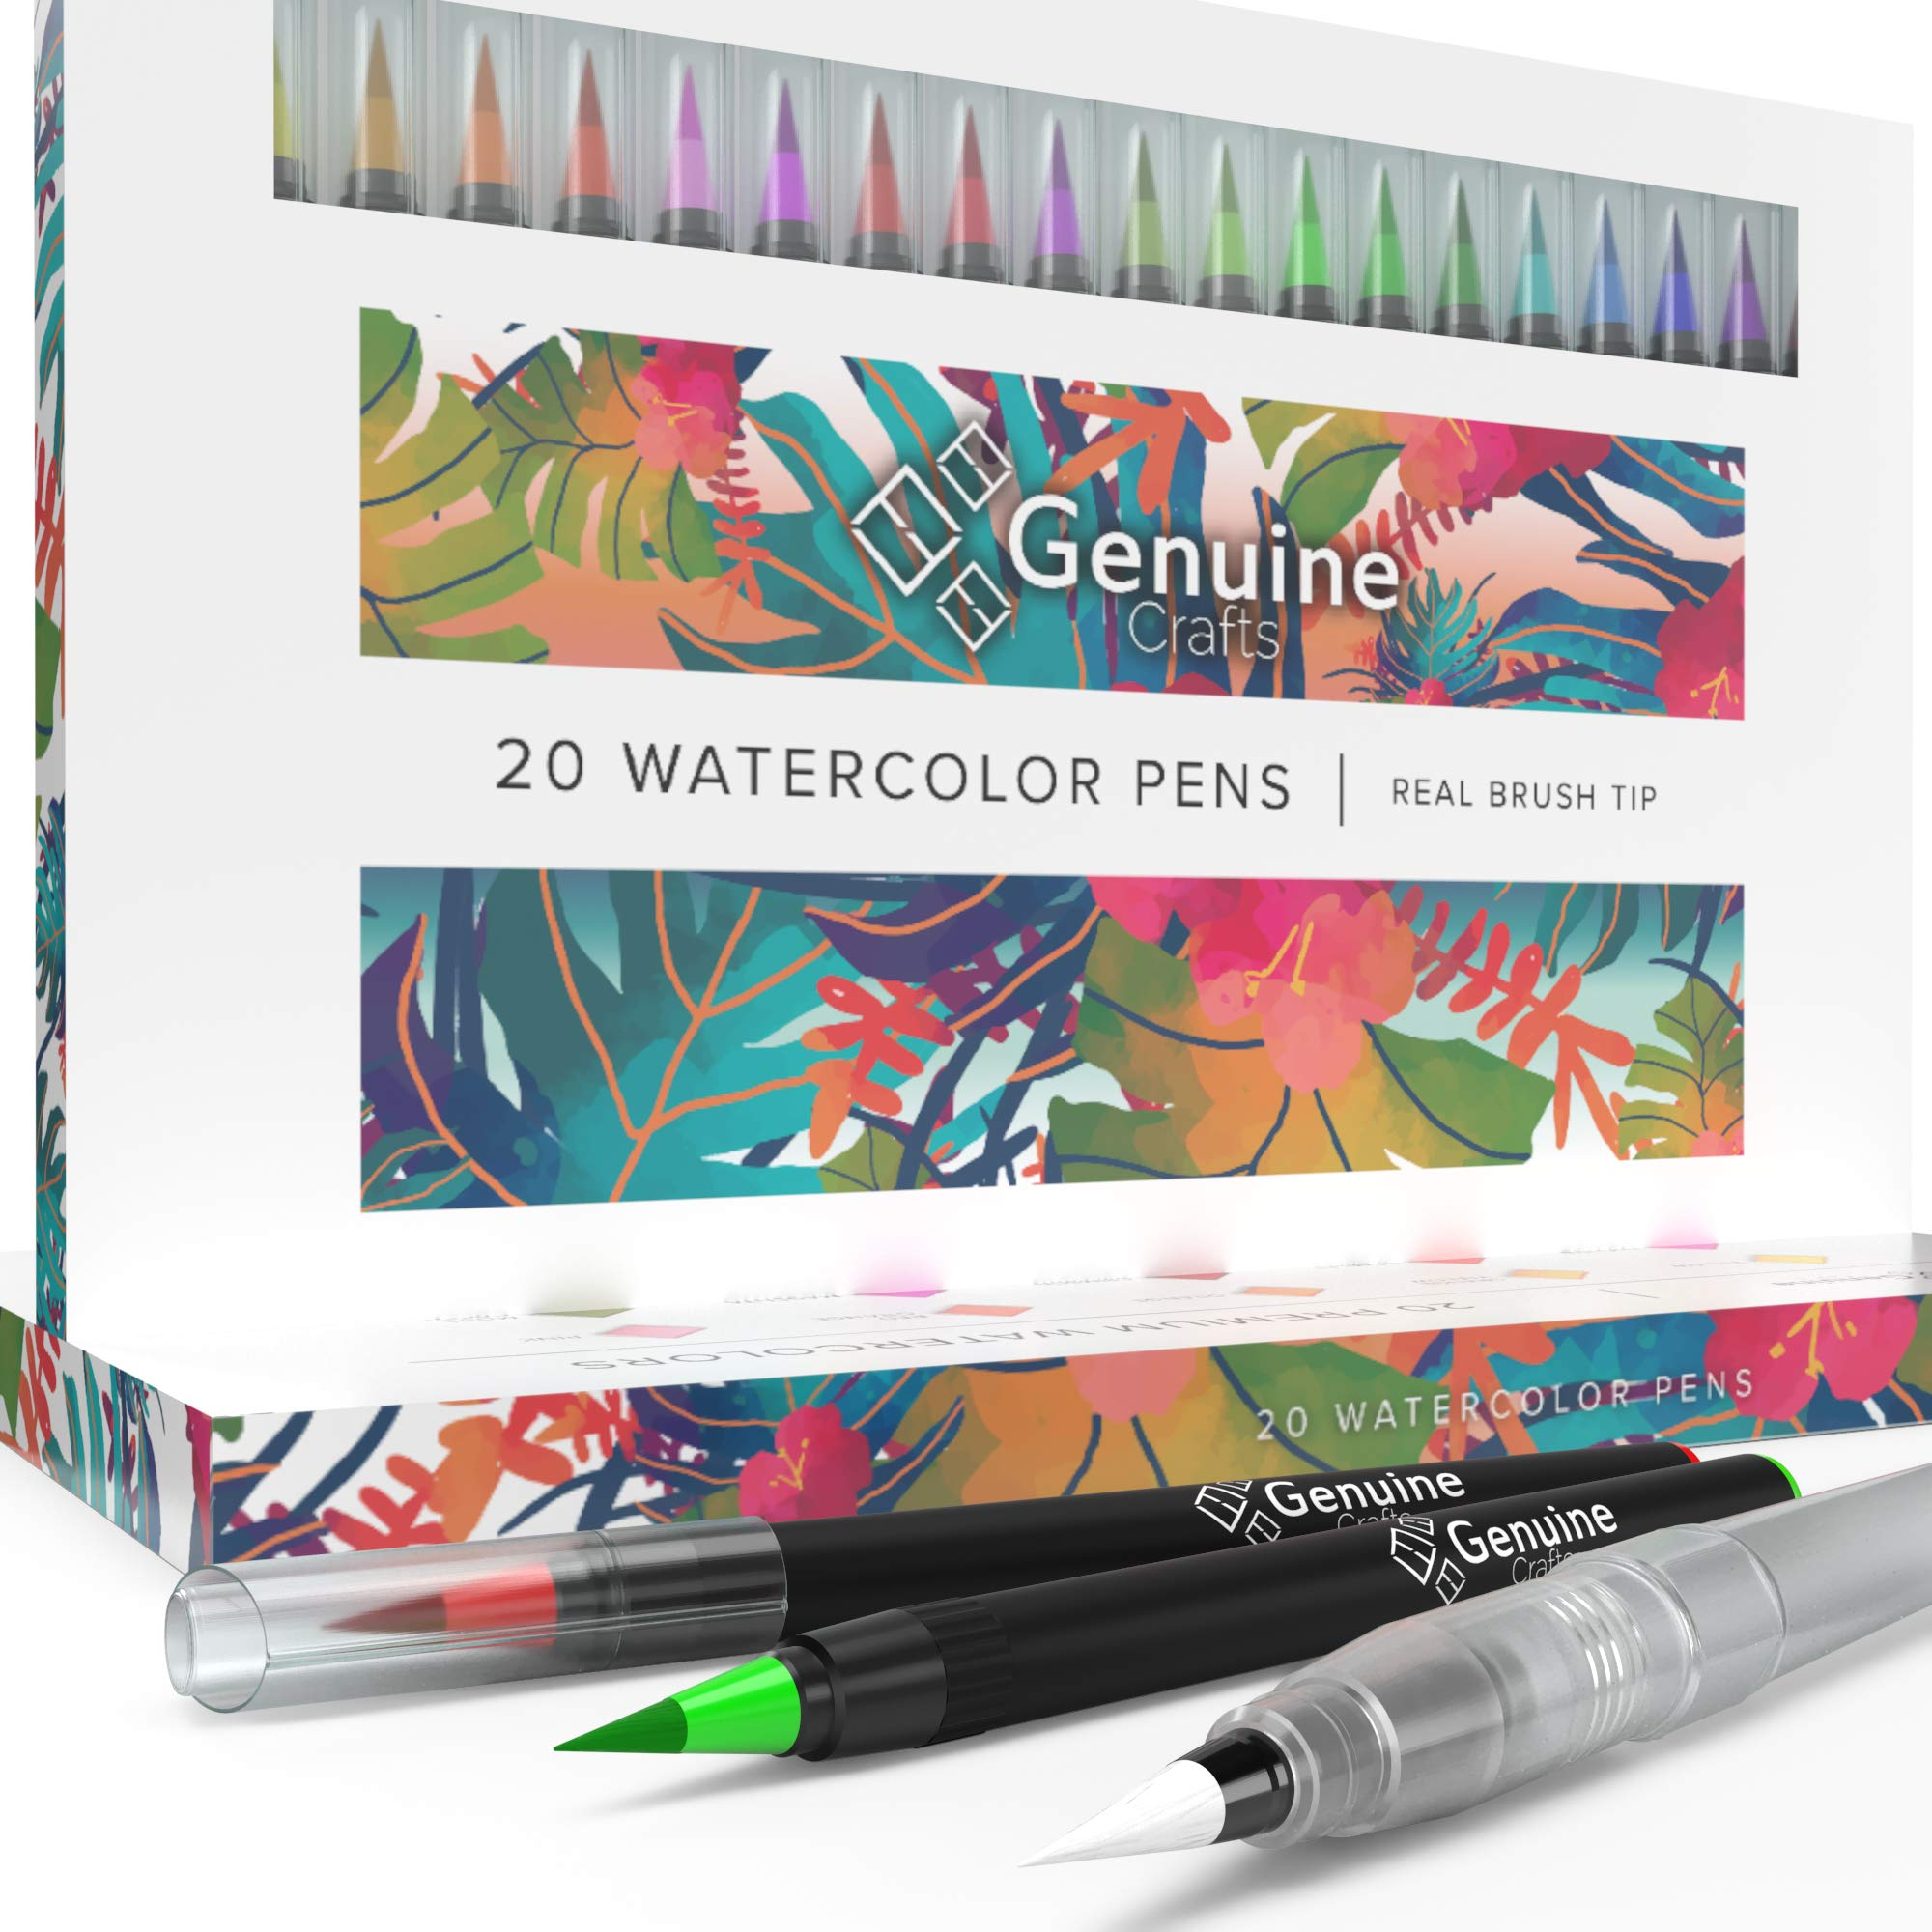 Watercolor Brush Pens by Genuine Crafts - Set of 20 Premium Colors - Real Brush Tips - 1 Refillable Water Pen - No Mess Storage Case - Washable Nontoxic Markers - Portable Painting by Genuine Crafts